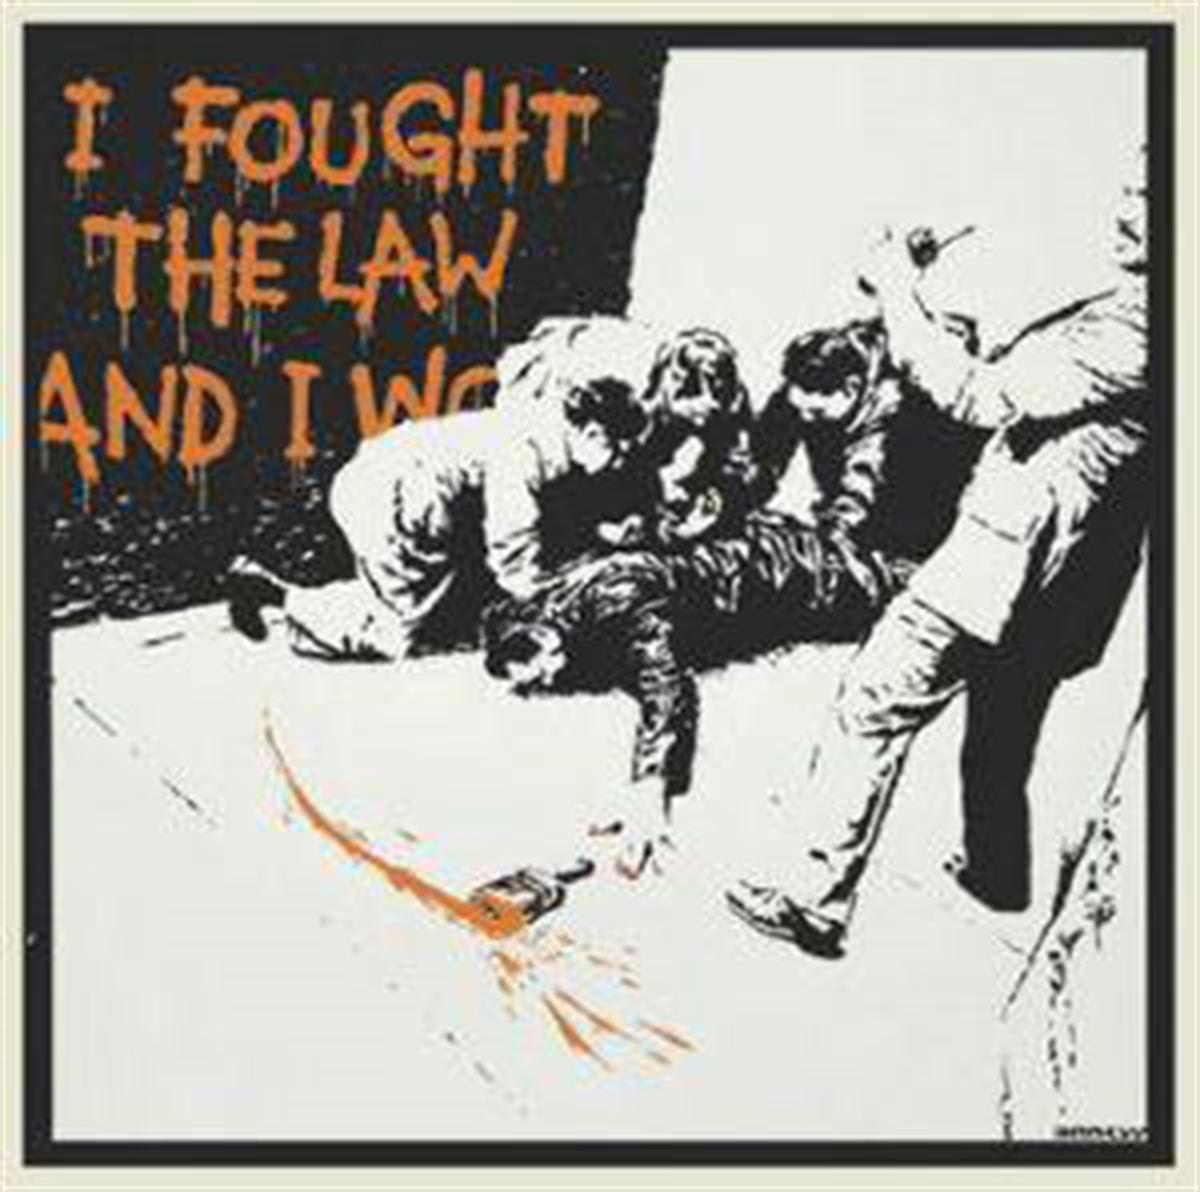 Banksy's 'I Fought The Law'